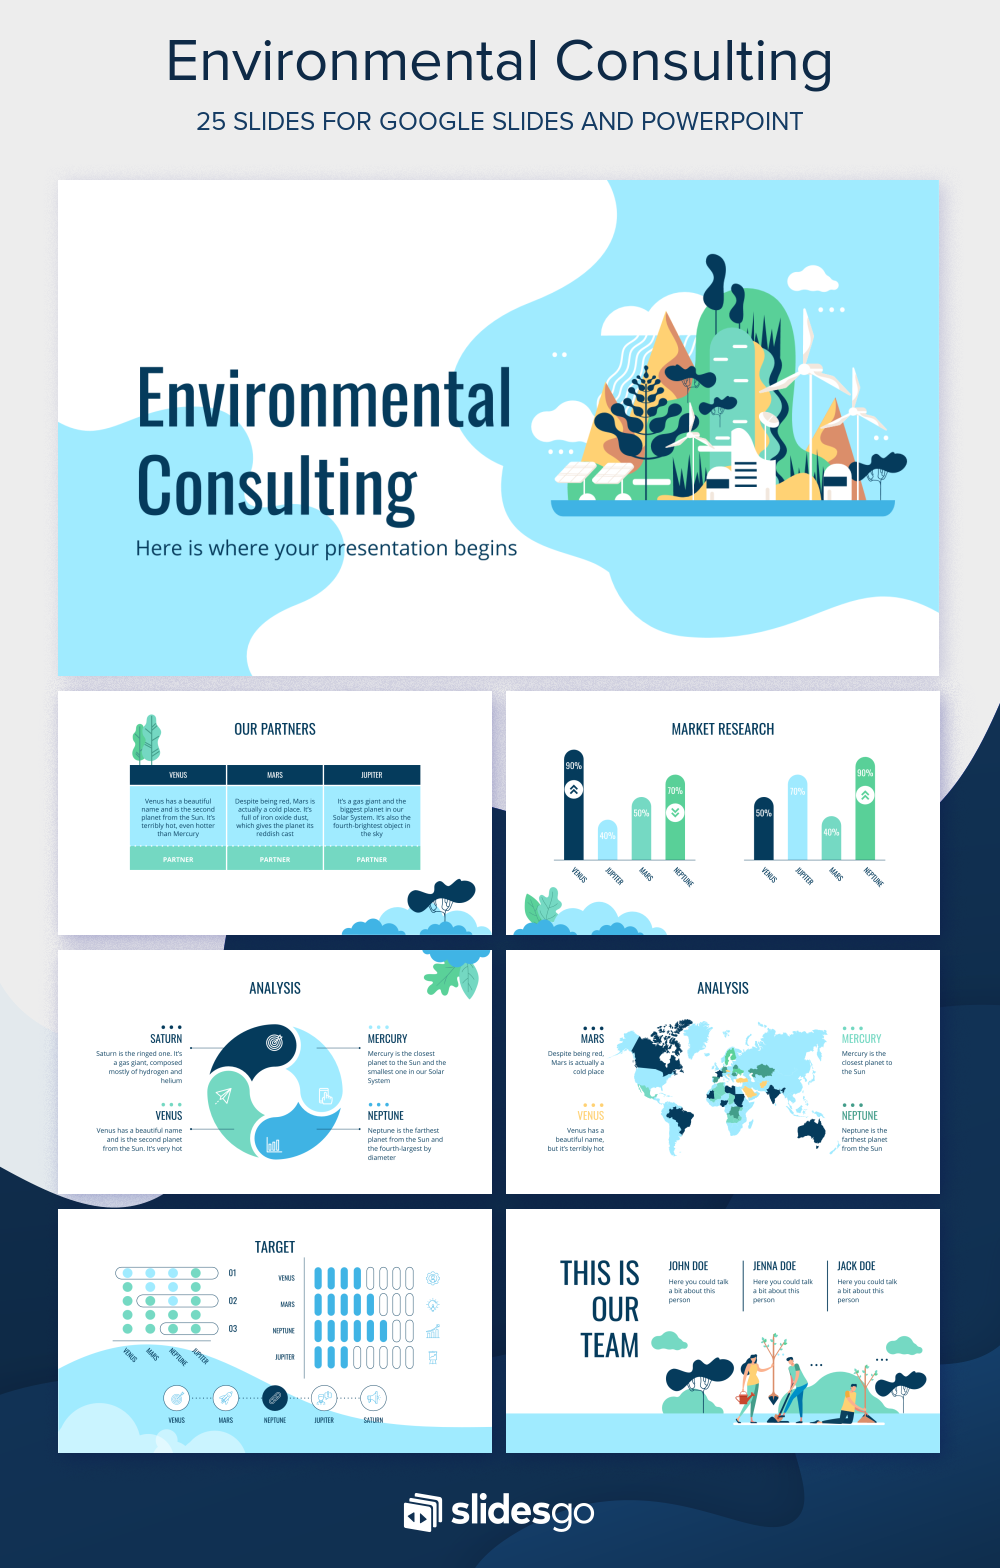 Take care of the environment and offer your consulting